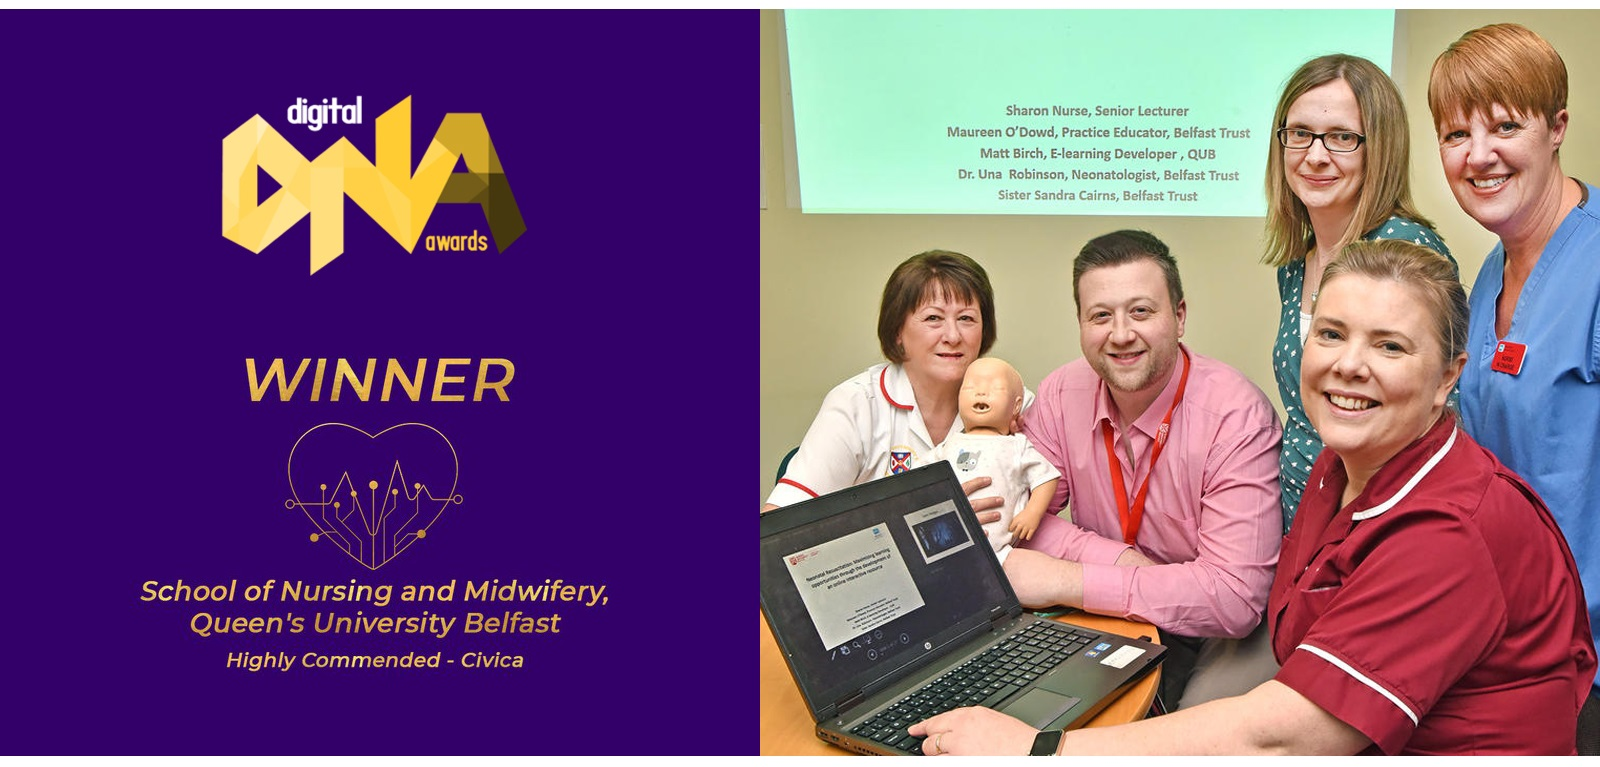 Winners of the Digital DNA Awards 2020 'Tech for Good' Innovation prize Sharon Nurse and Matt Birch (Queen's School of Nursing and Midwifery) and Belfast Trust collaborators pictured with their interactive, multi-modal neonatal training package